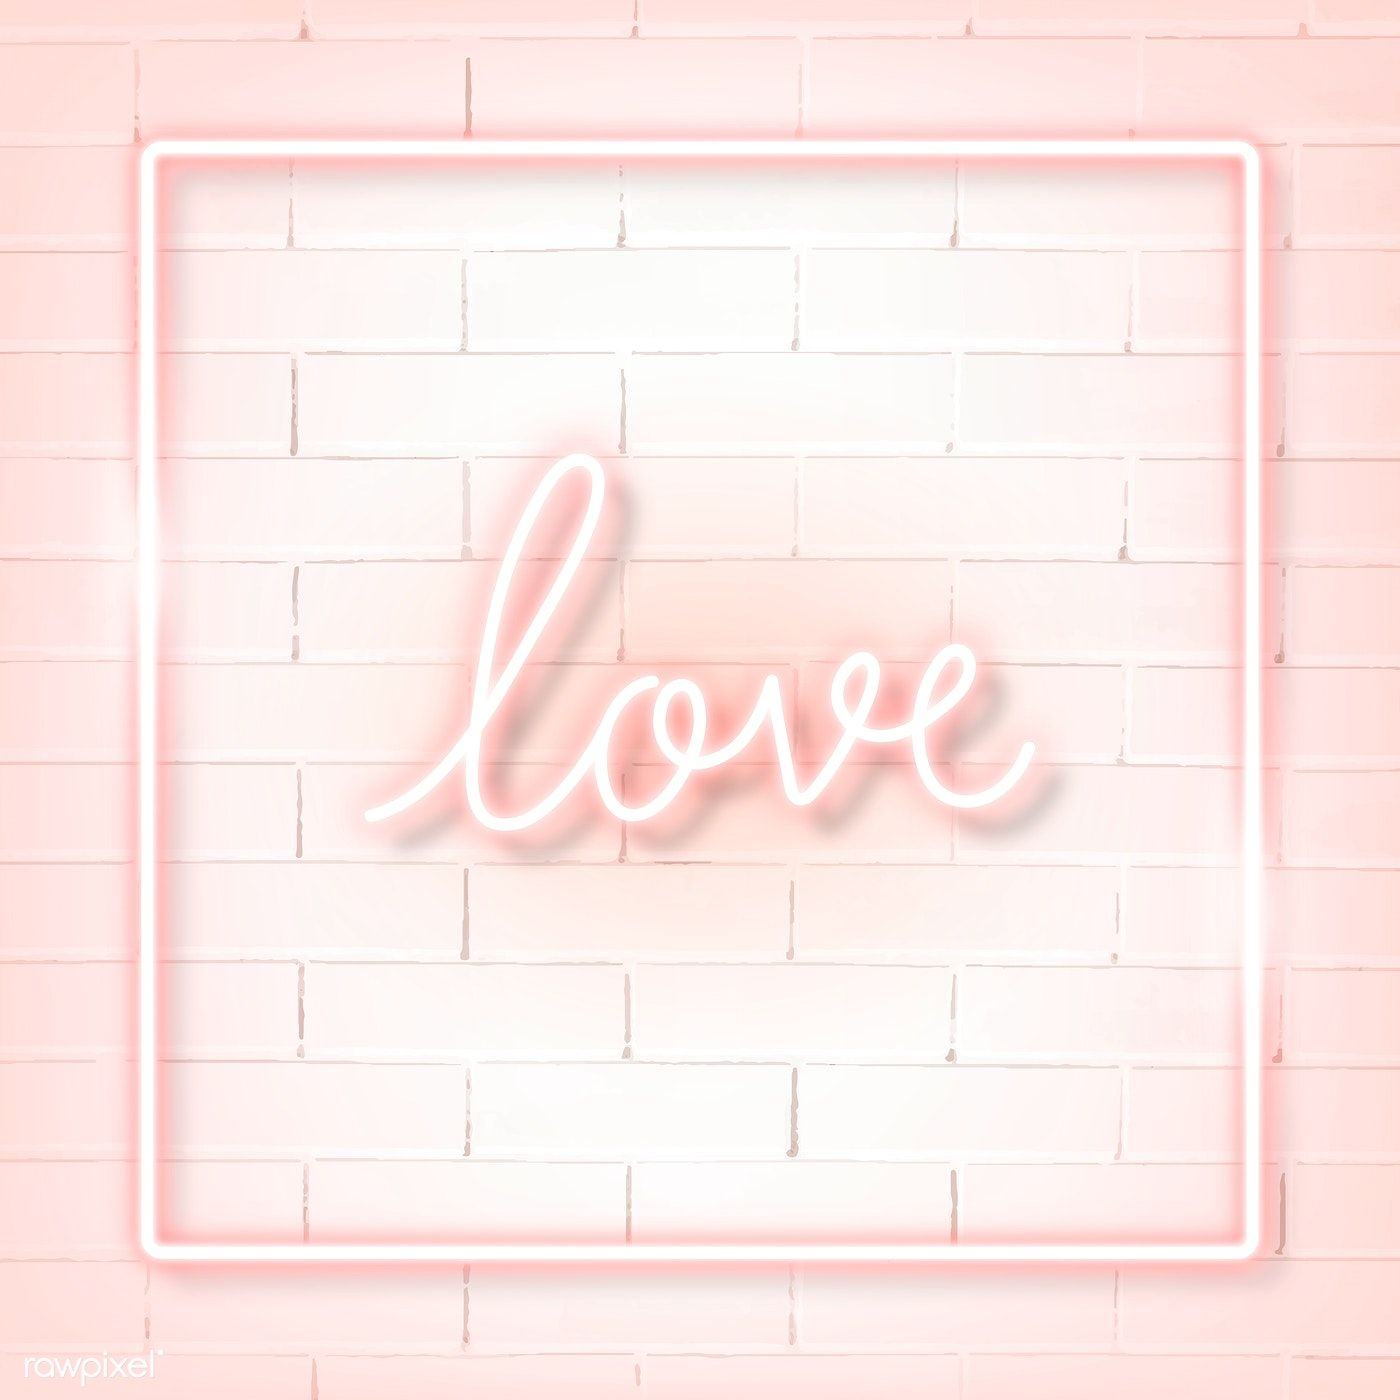 Download Premium Vector Of Square Pink Neon Frame On A White Brick Wall Pink Neon Sign Brick Wall Background Black Brick Wall